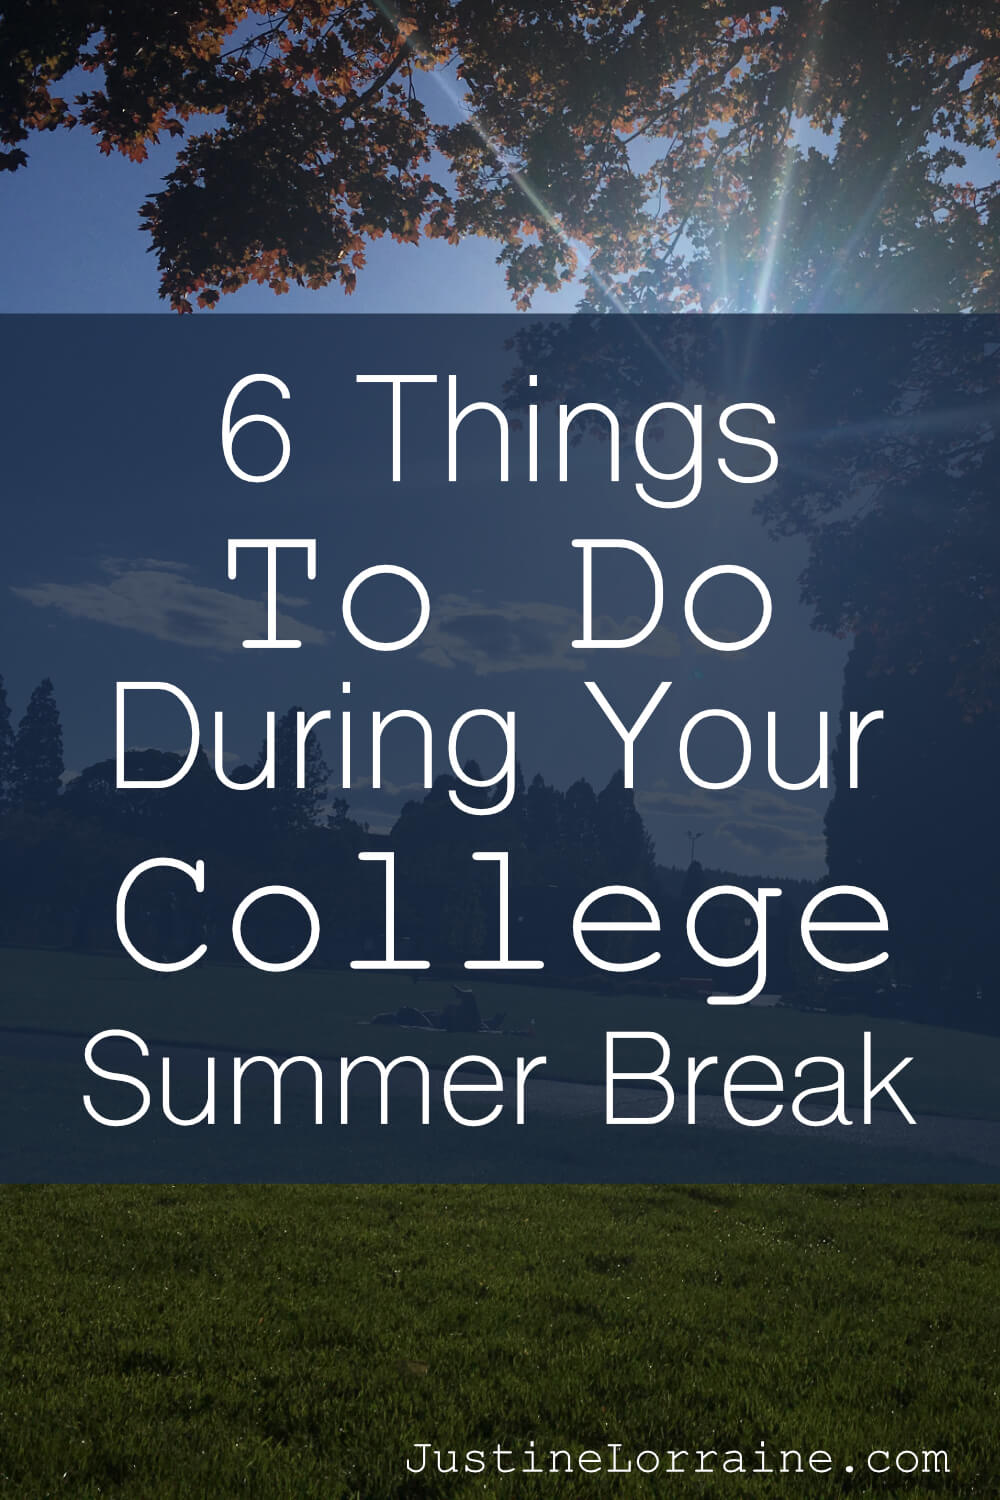 Summer Break is great way for college students to relax and have fun. Here are six ways to do so.